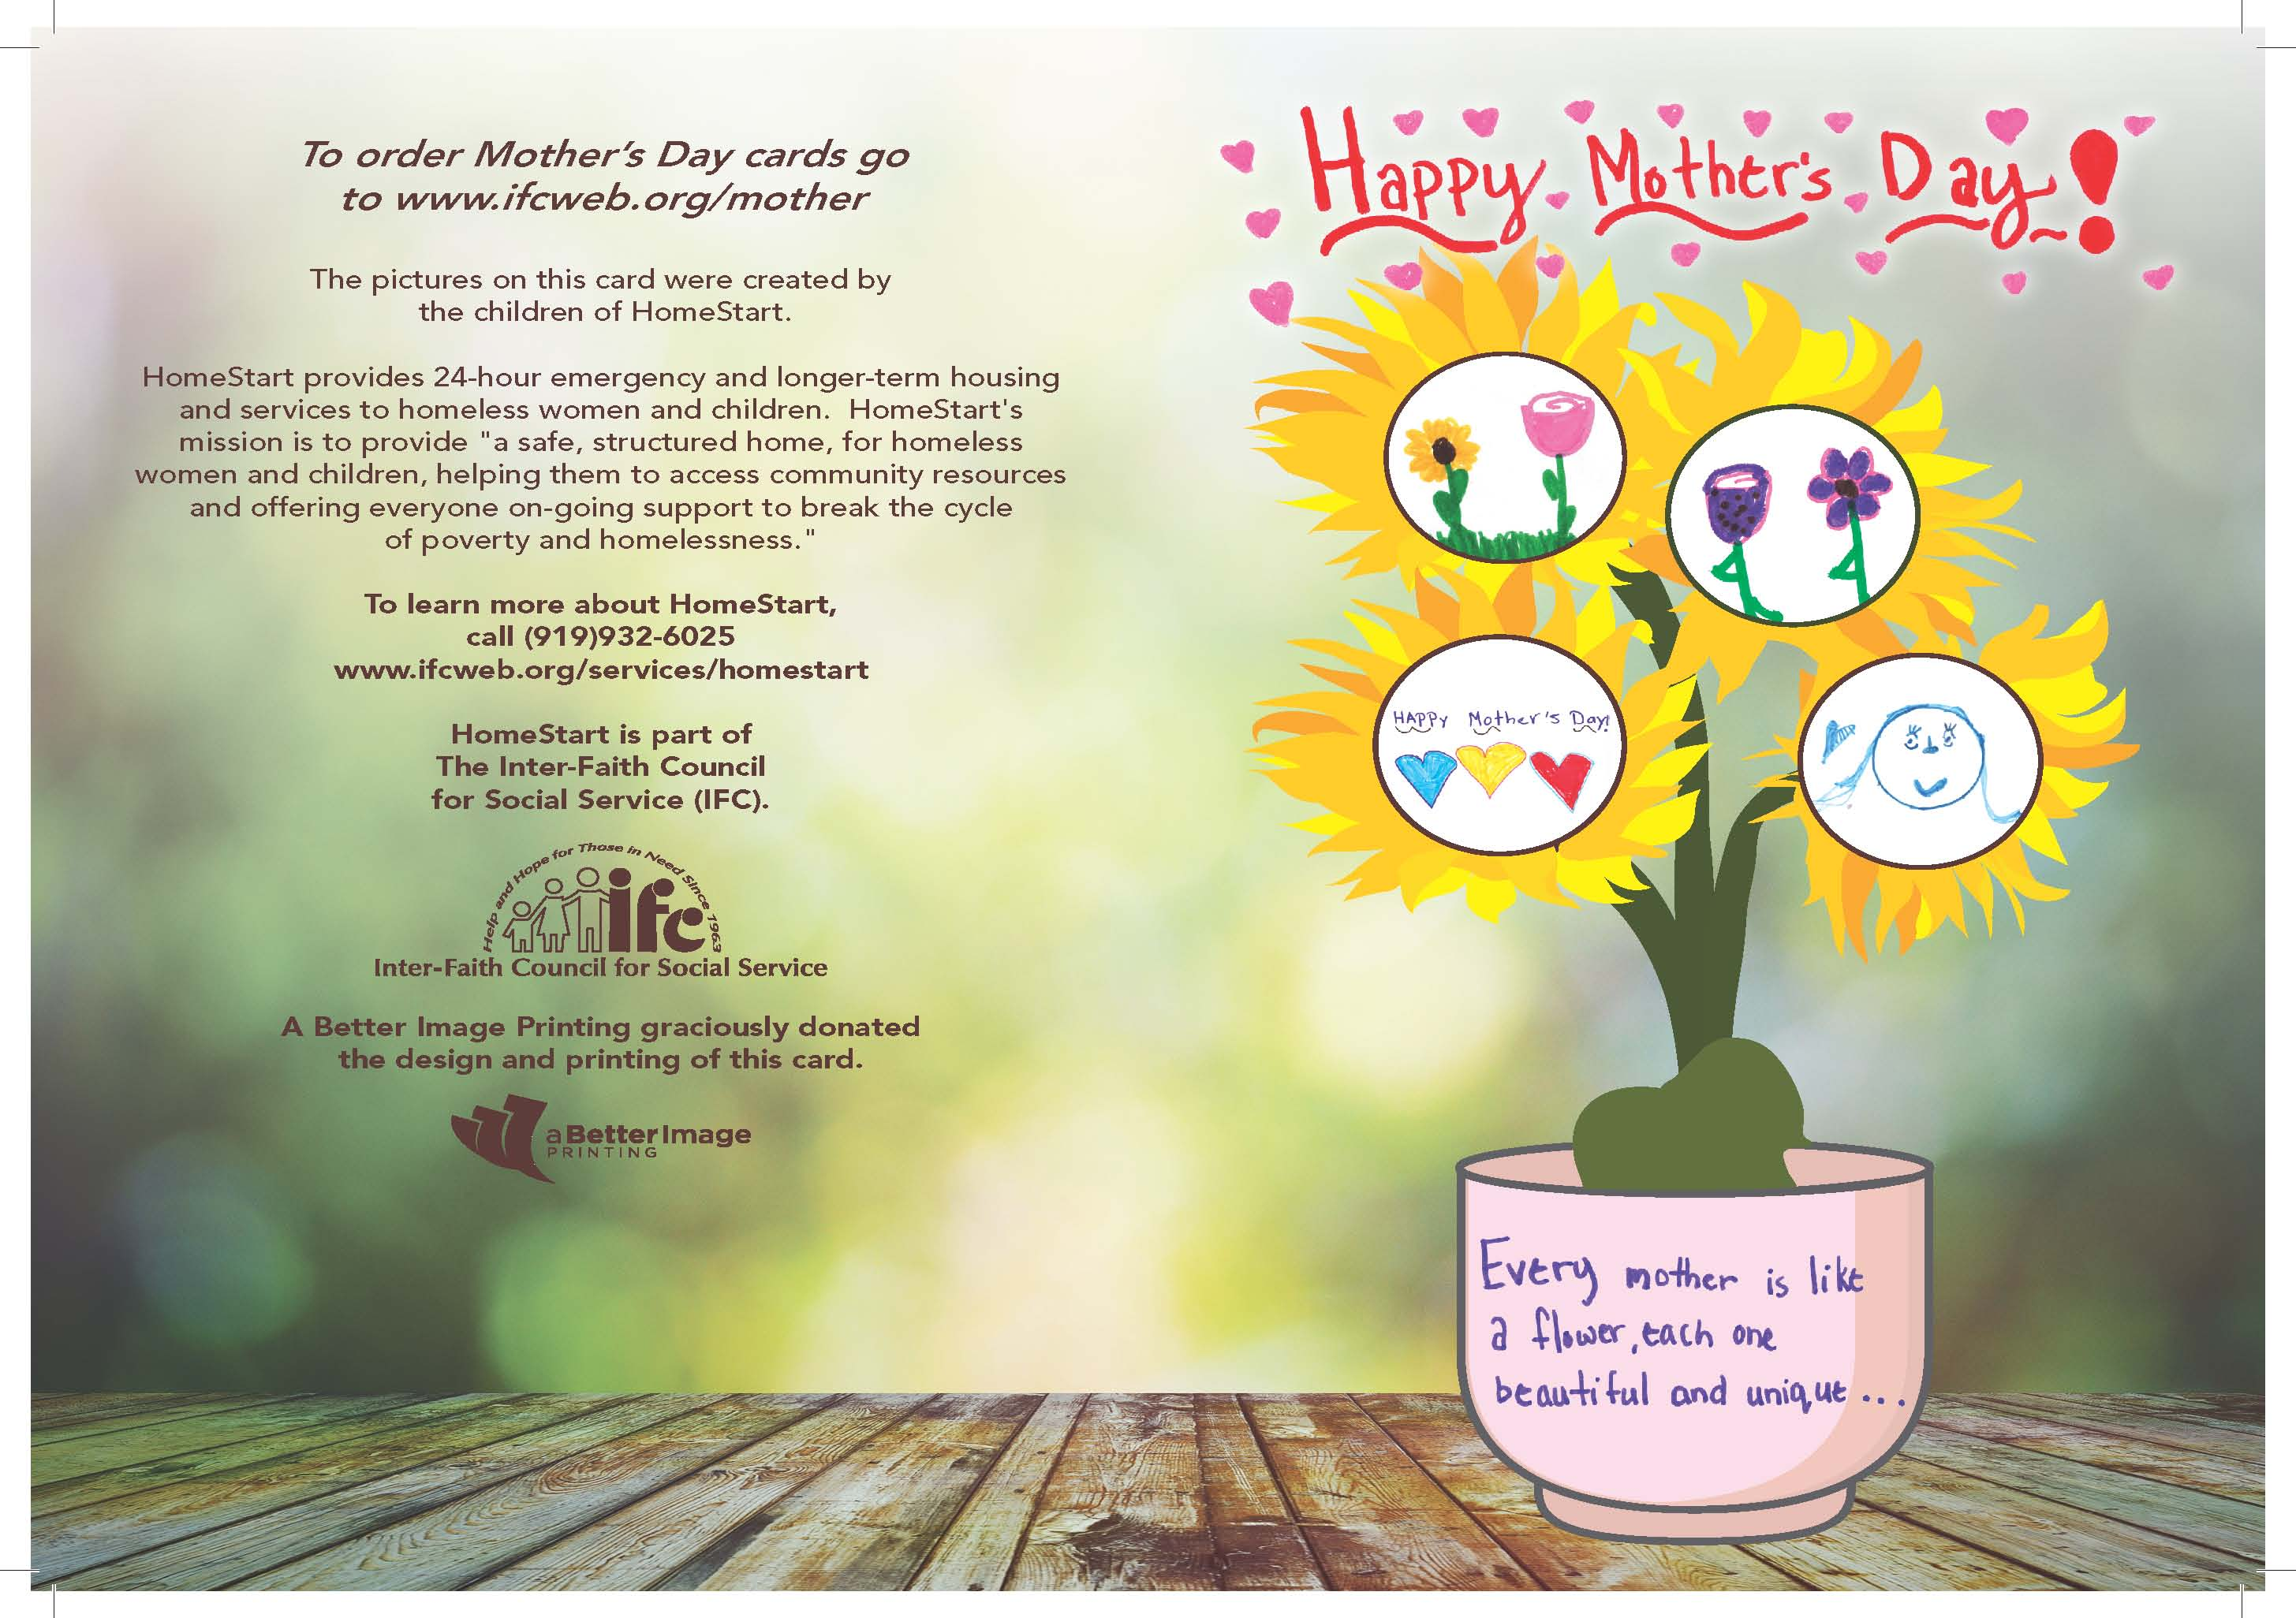 Mothers day gift cards inter faith council for social service hand flower kristyandbryce Image collections